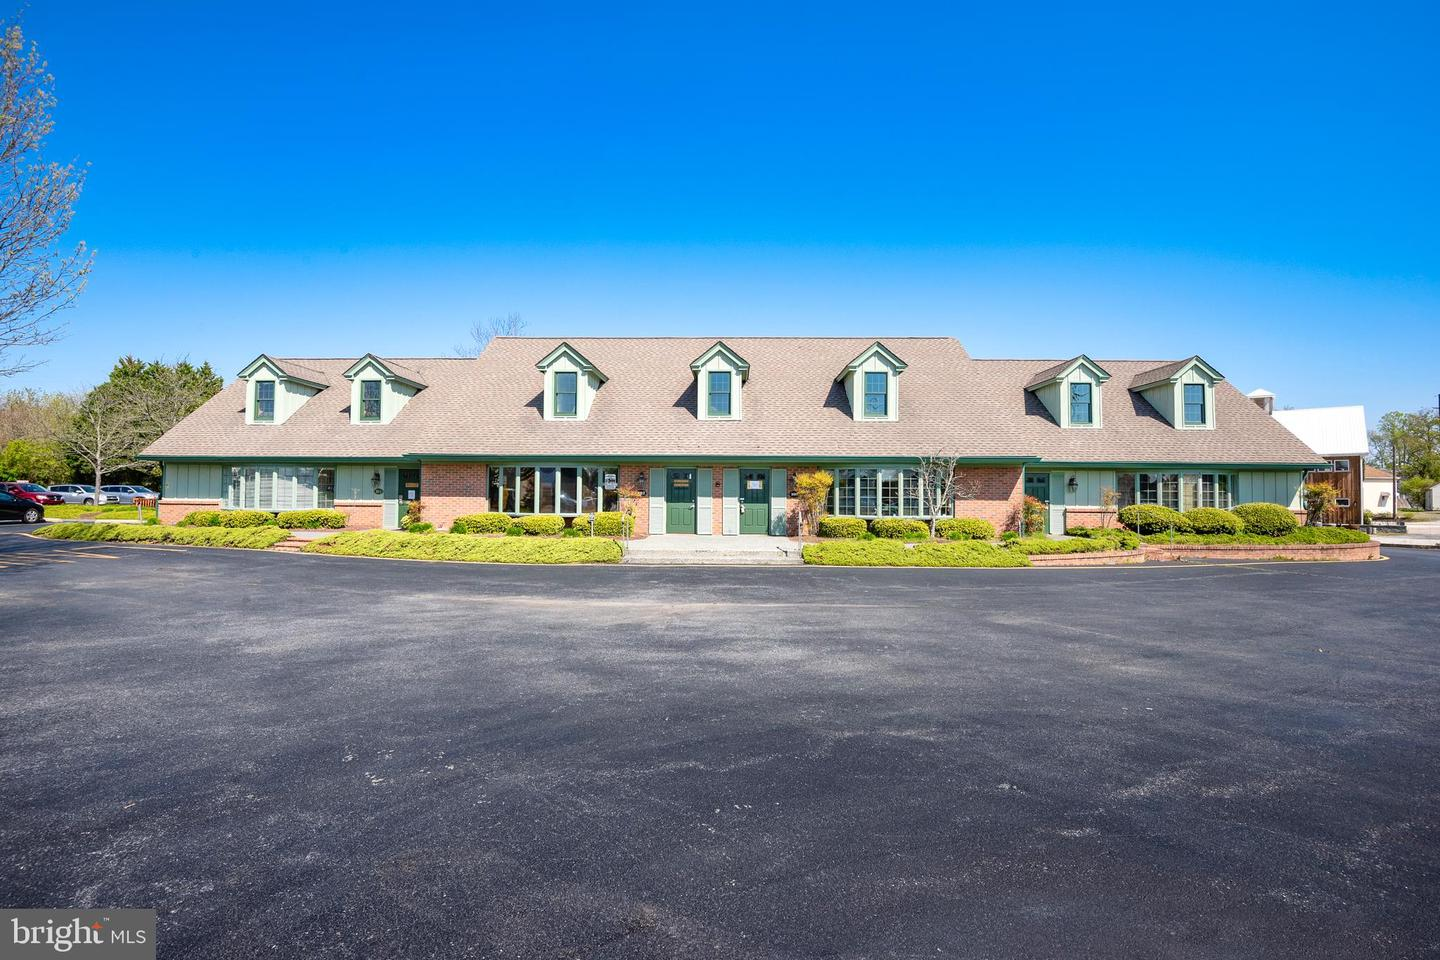 DESU152940-304103034036-2020-07-09-17-38-42 750 Kings Hwy #3 & 4 | Lewes, DE Real Estate For Sale | MLS# Desu152940  - Coldwell Banker Resort Realty